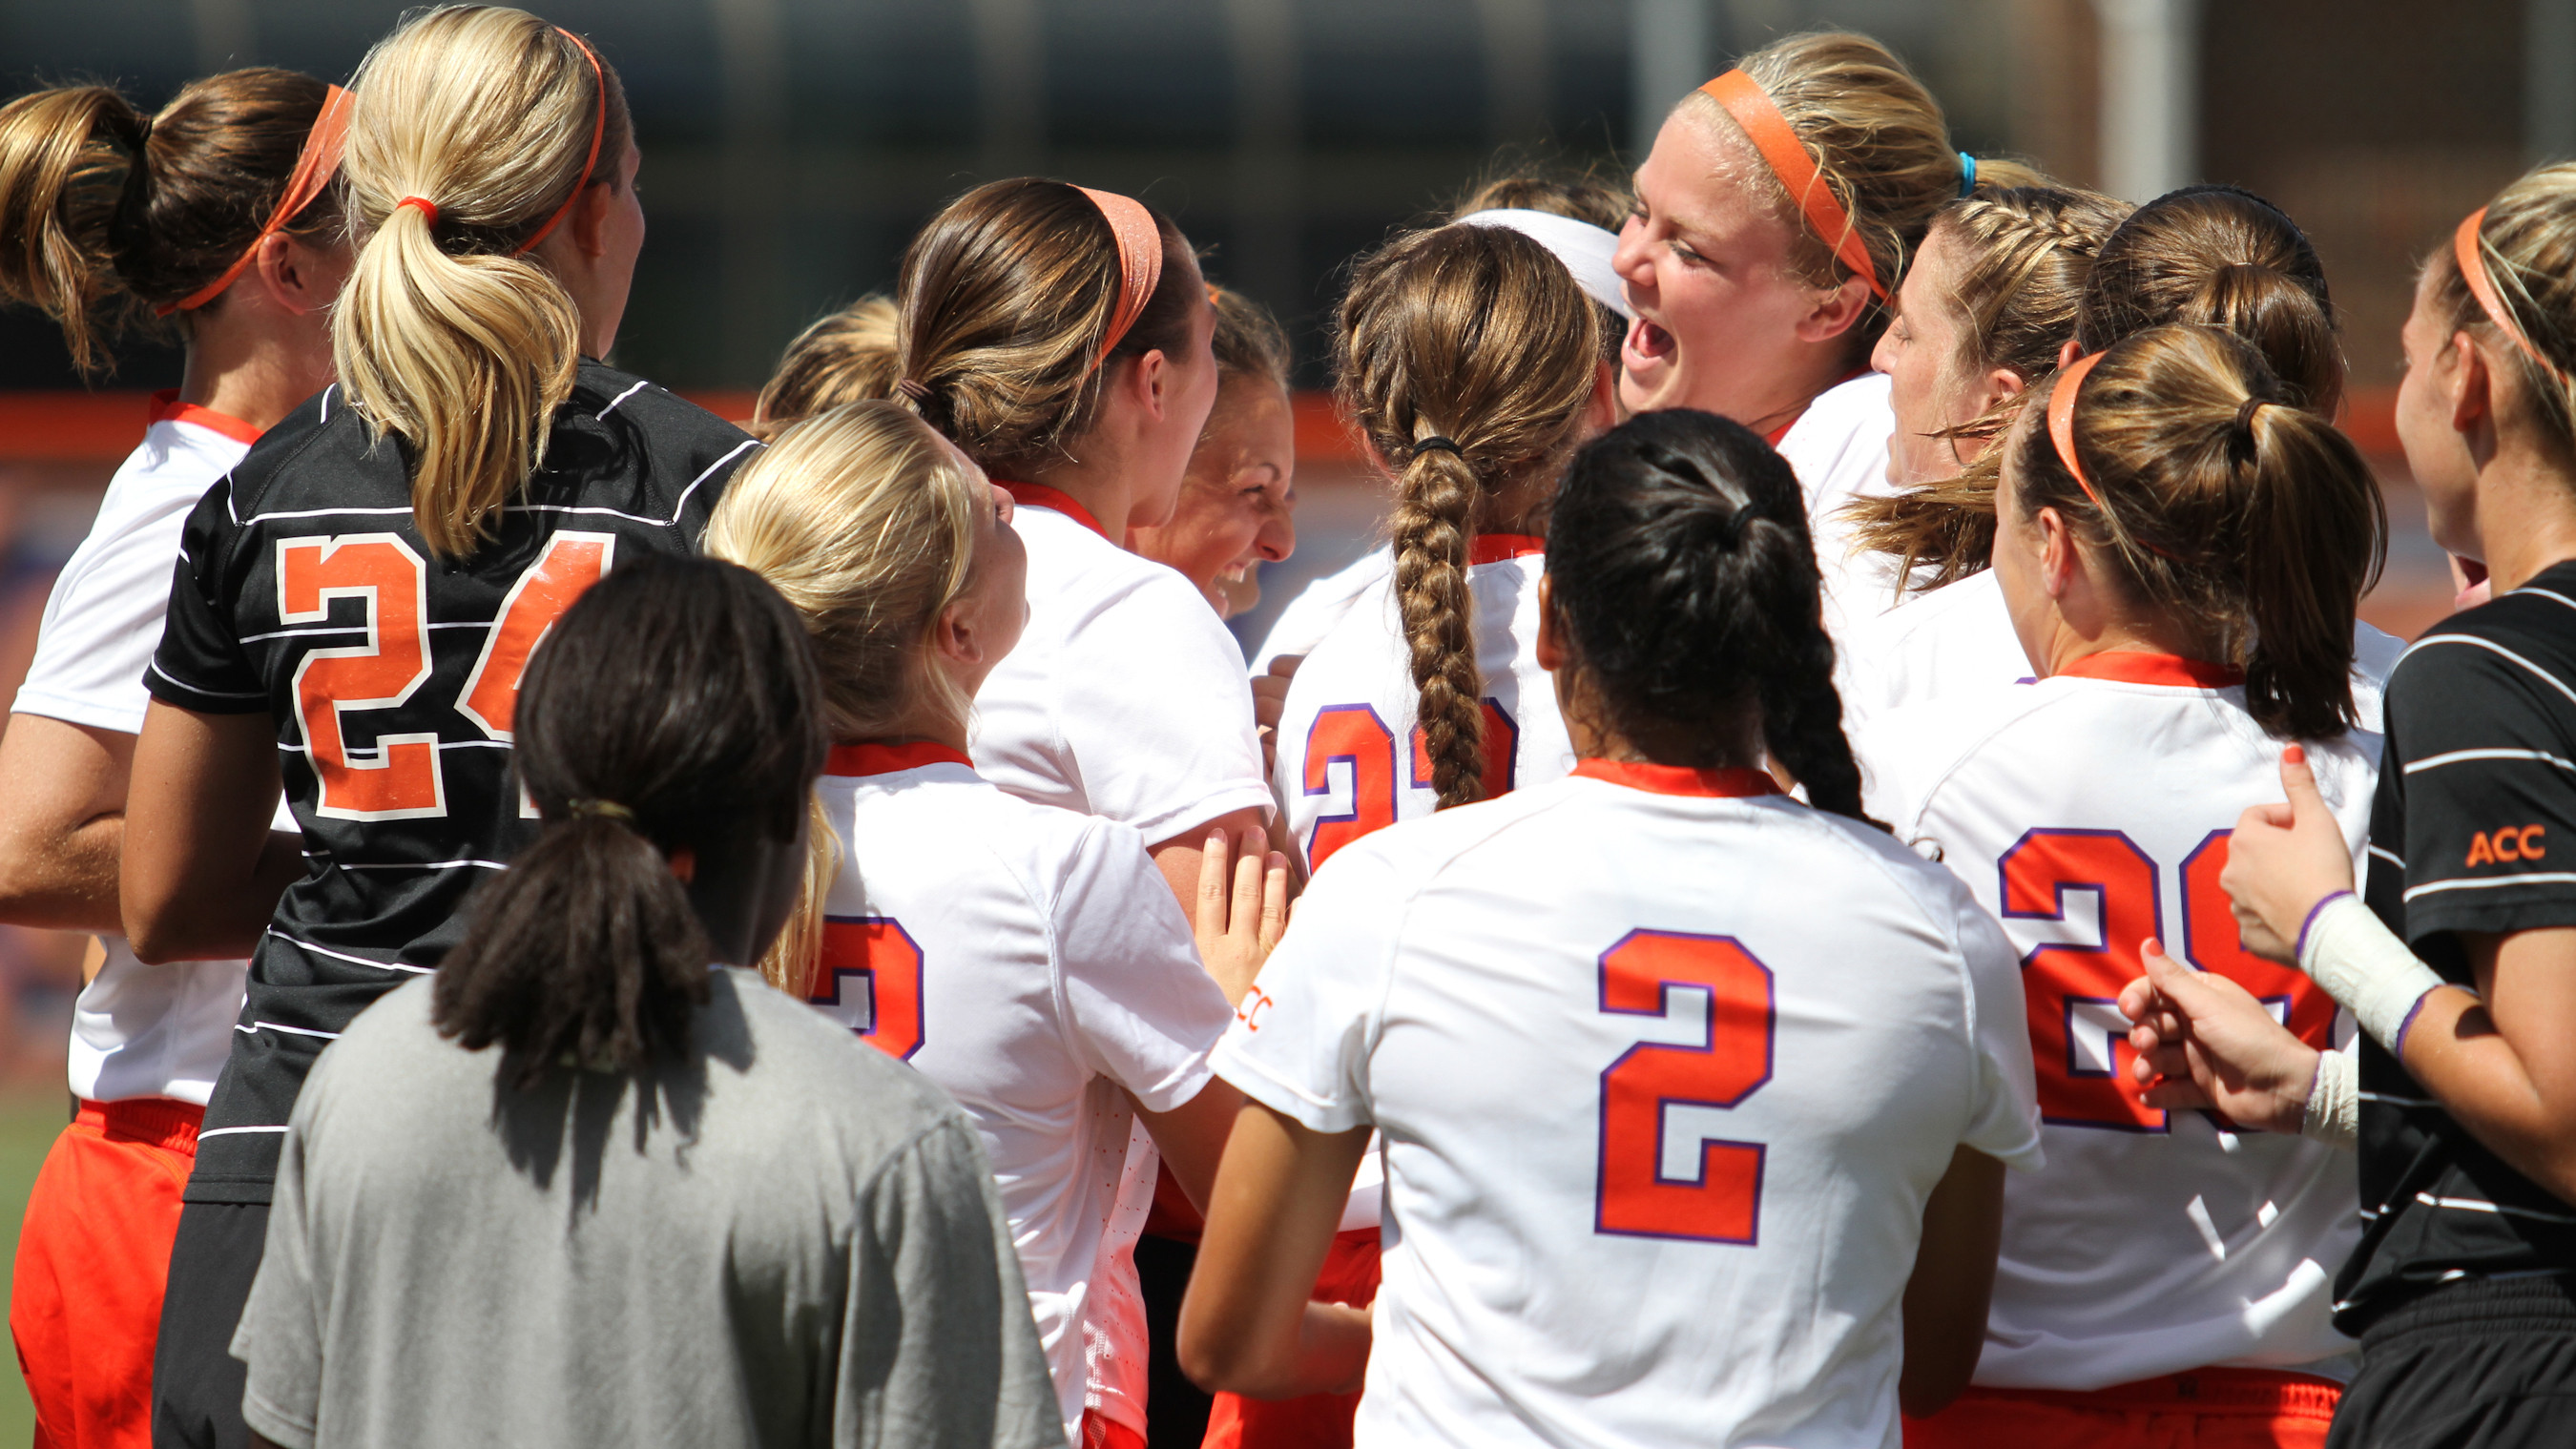 Tigers Travel to Chapel Hill to Face #4 North Carolina Thursday